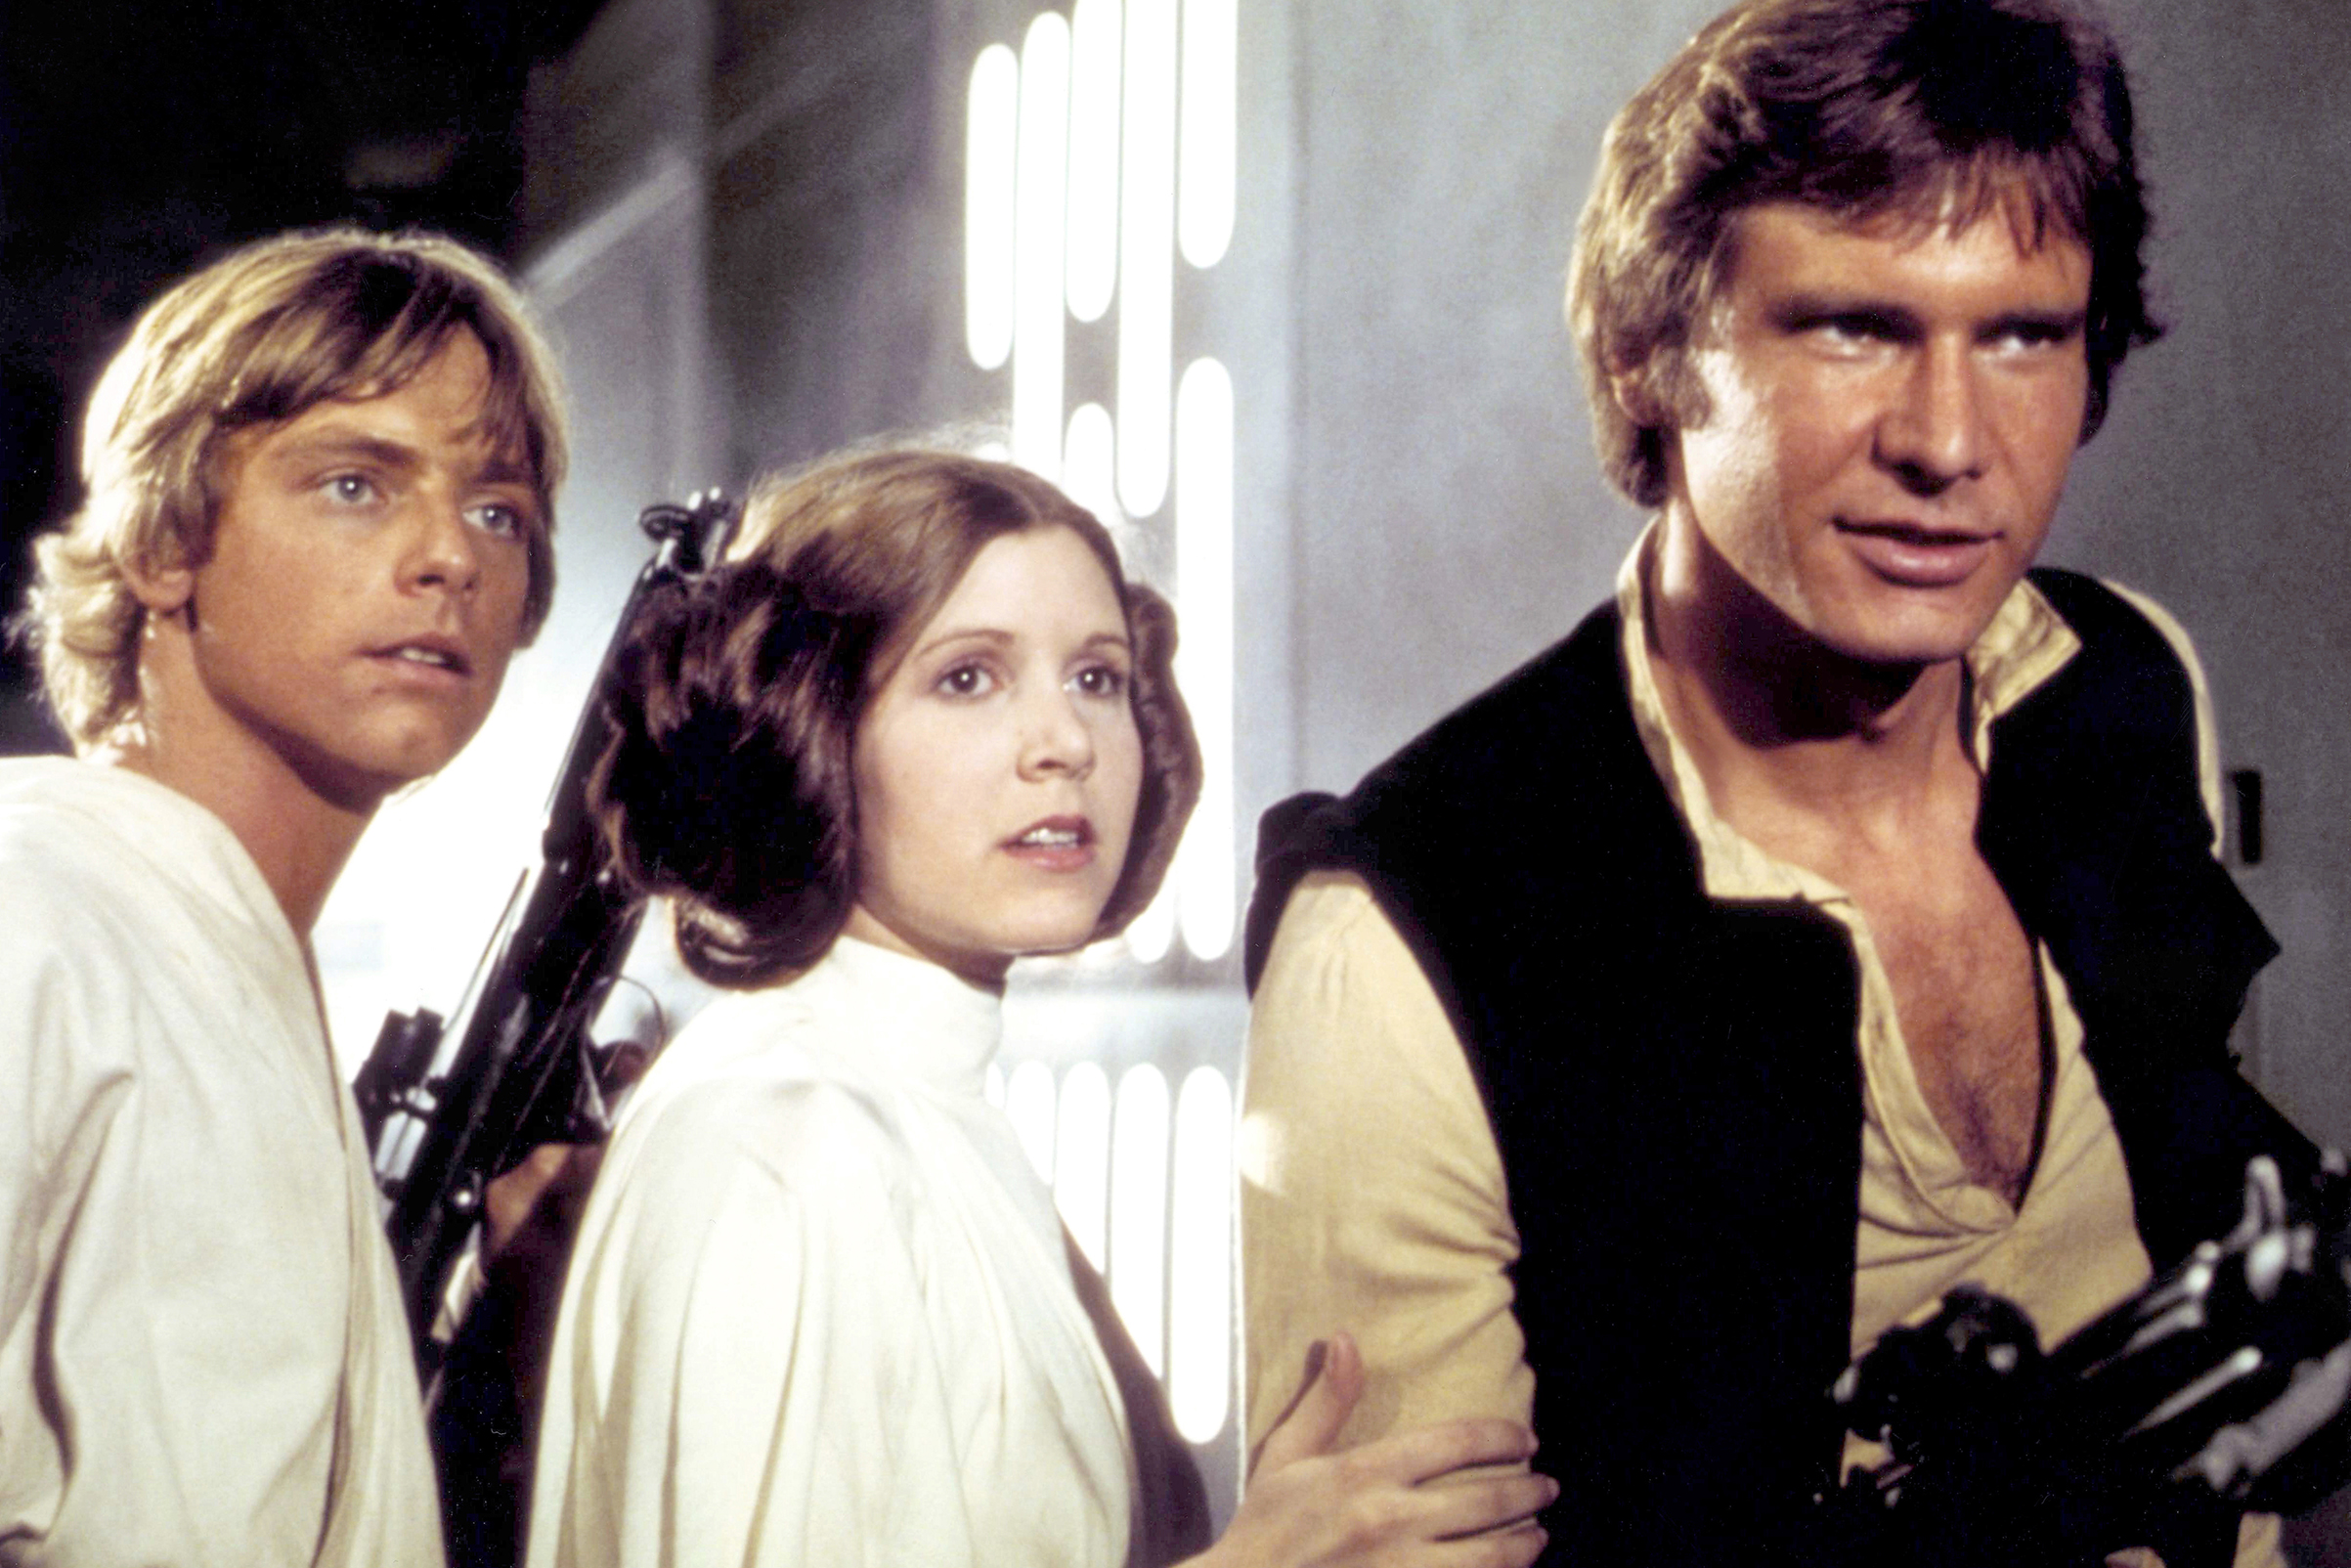 Mark Hamill, Carrie Fisher and Harrison Ford on the set of Star Wars: Episode IV - A New Hope.